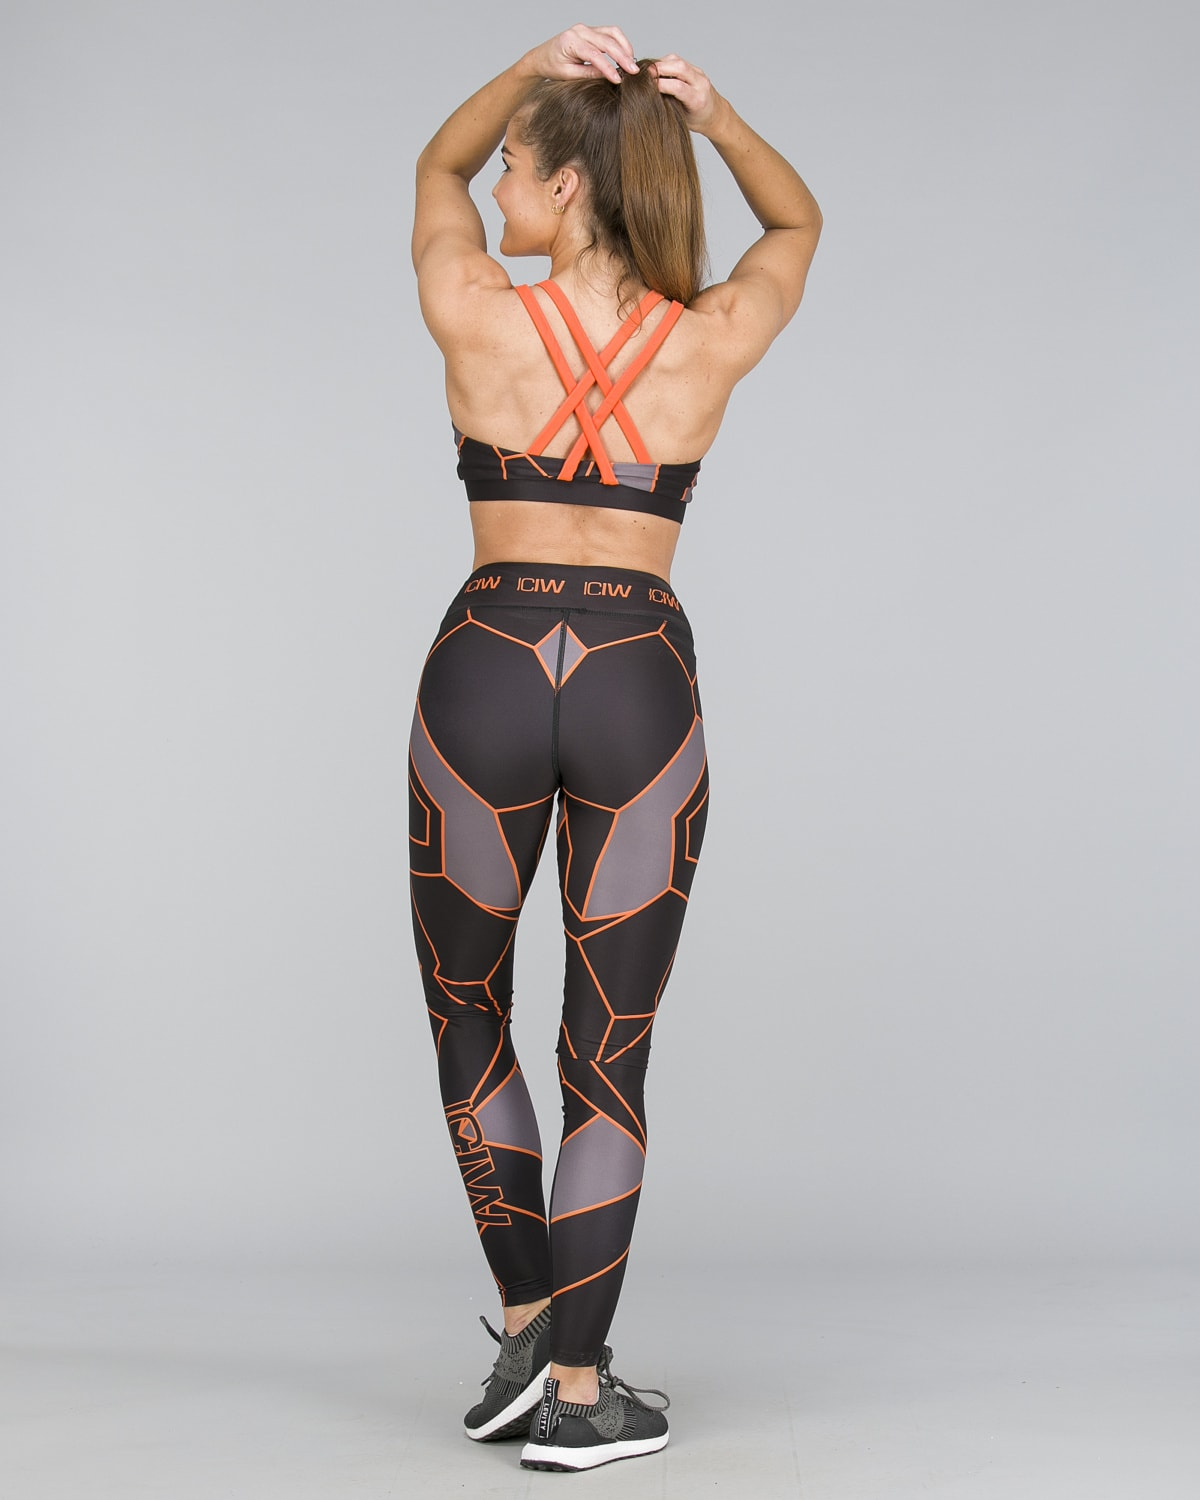 ICANIWILL – Orange Camo Tights b